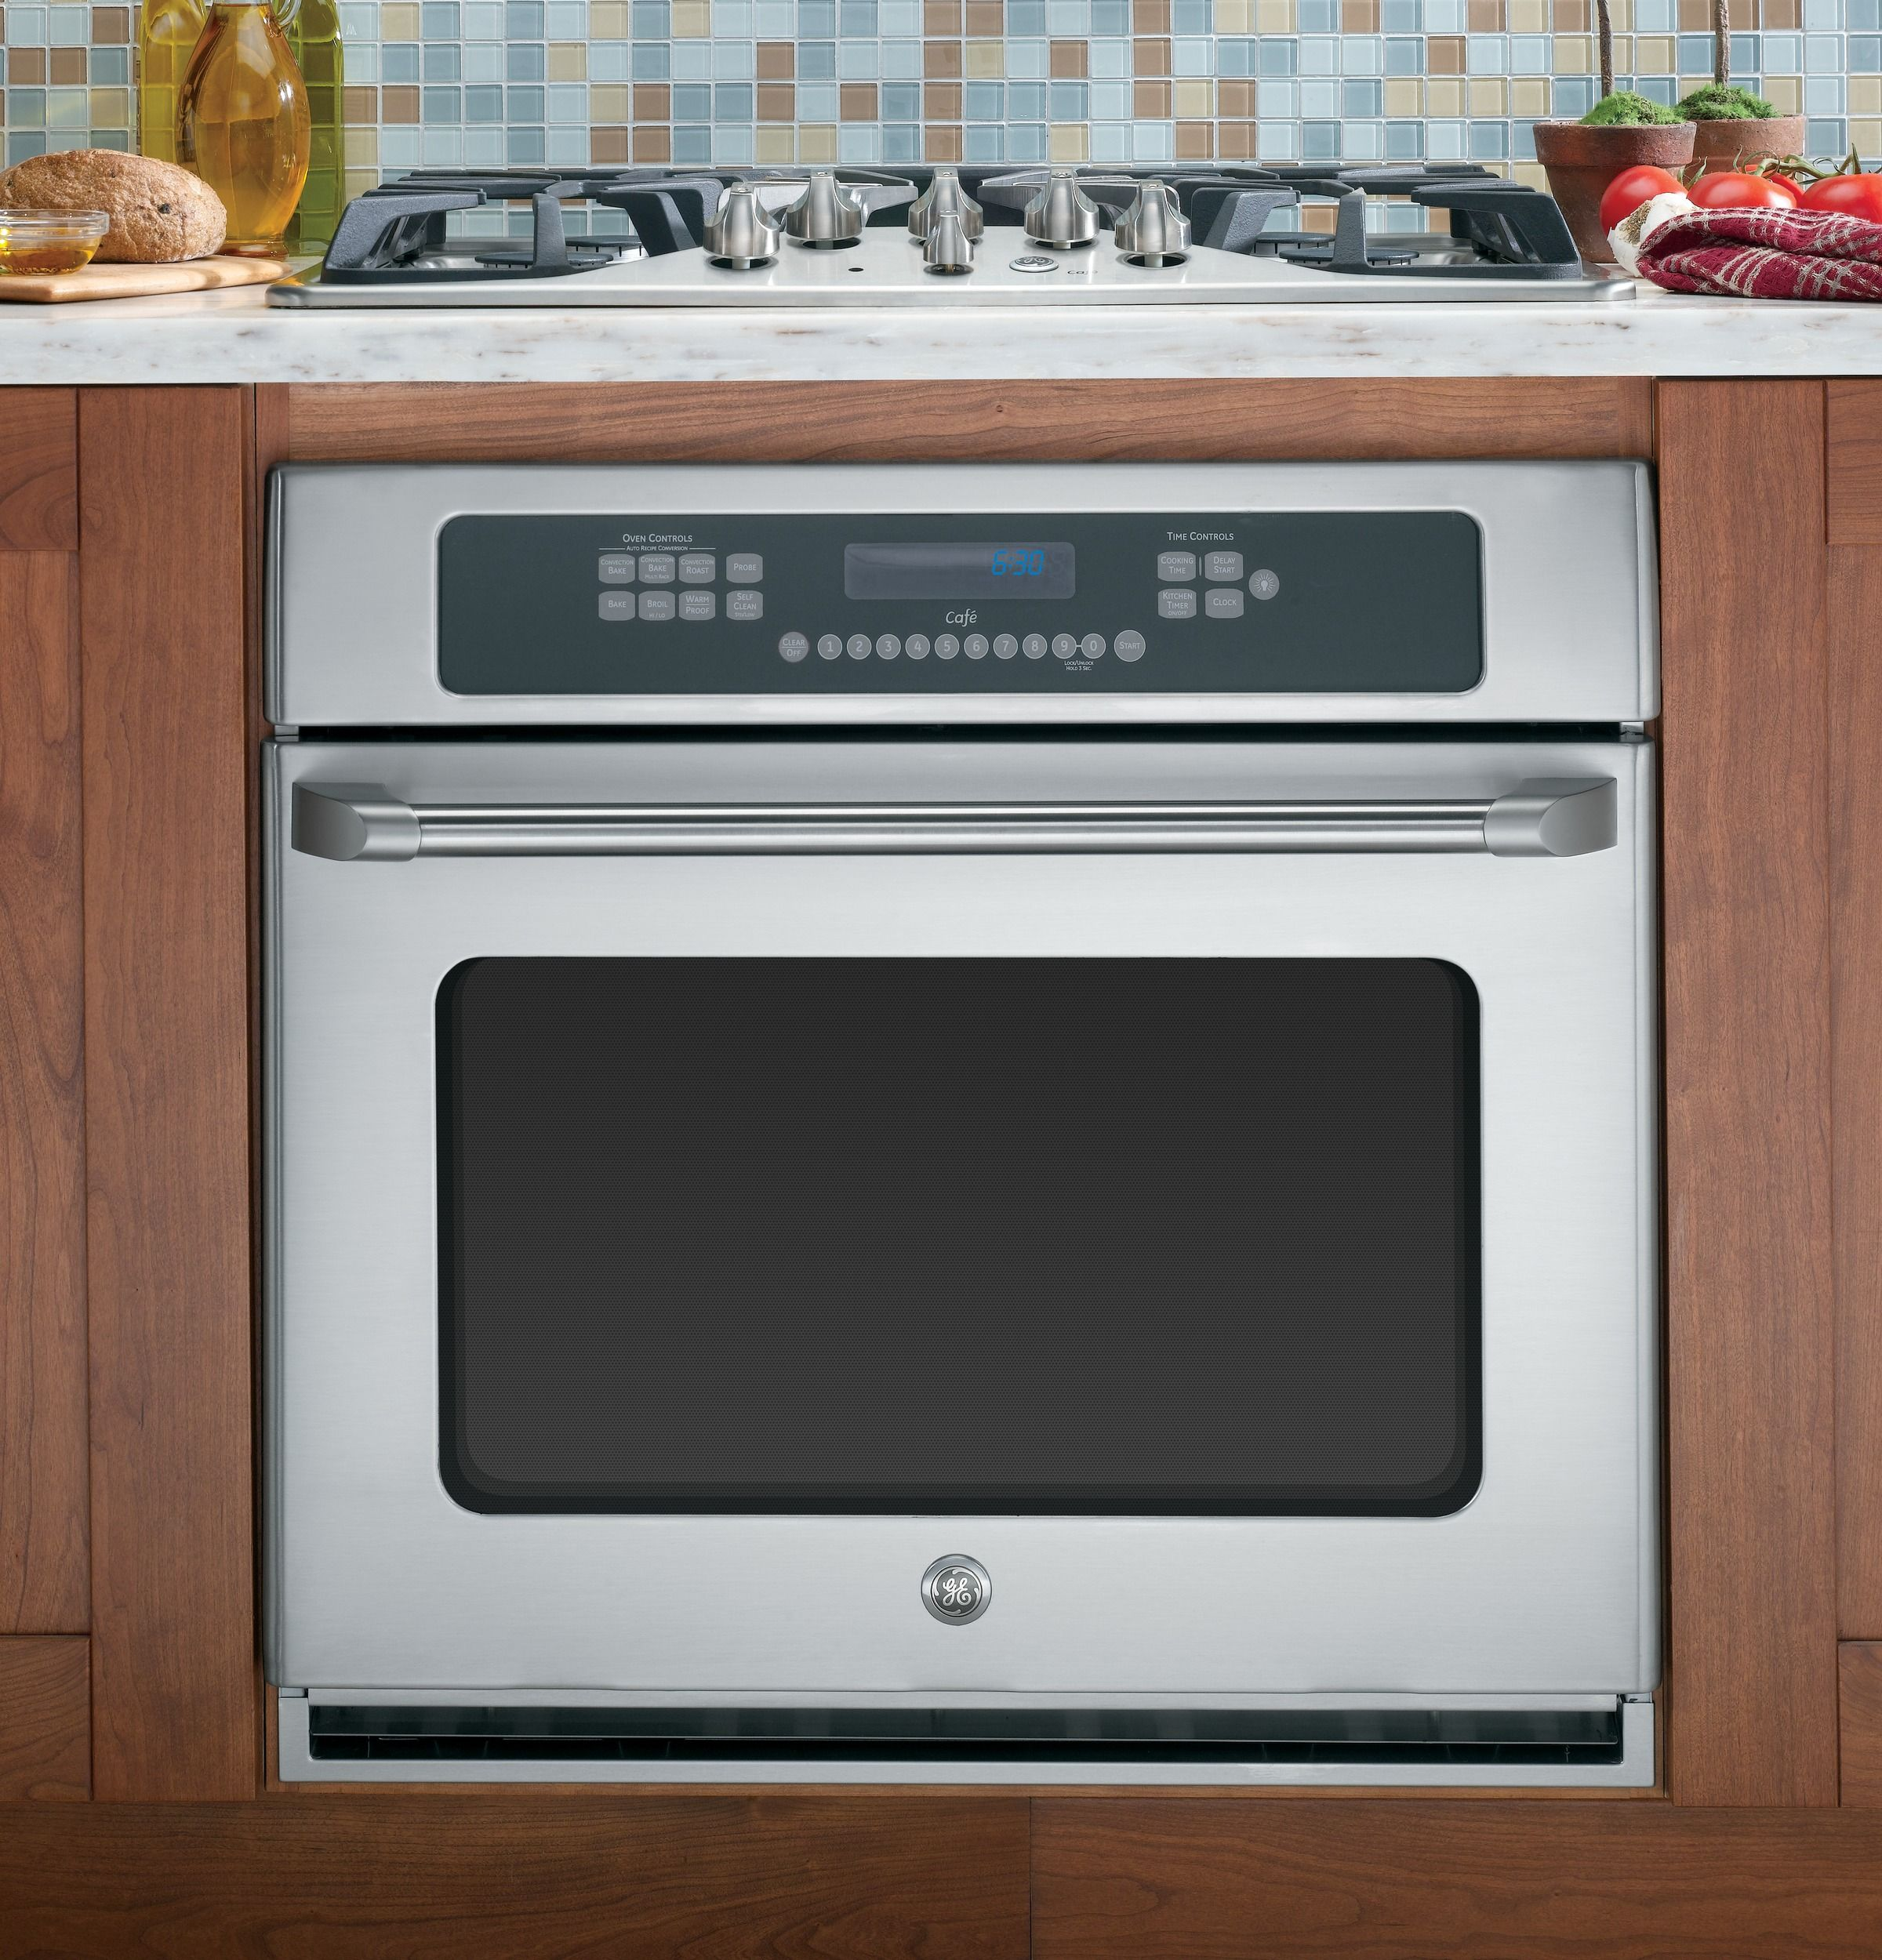 Oven Below Cooktop In Counter Wall Oven Single Electric Wall Oven Gas Wall Oven